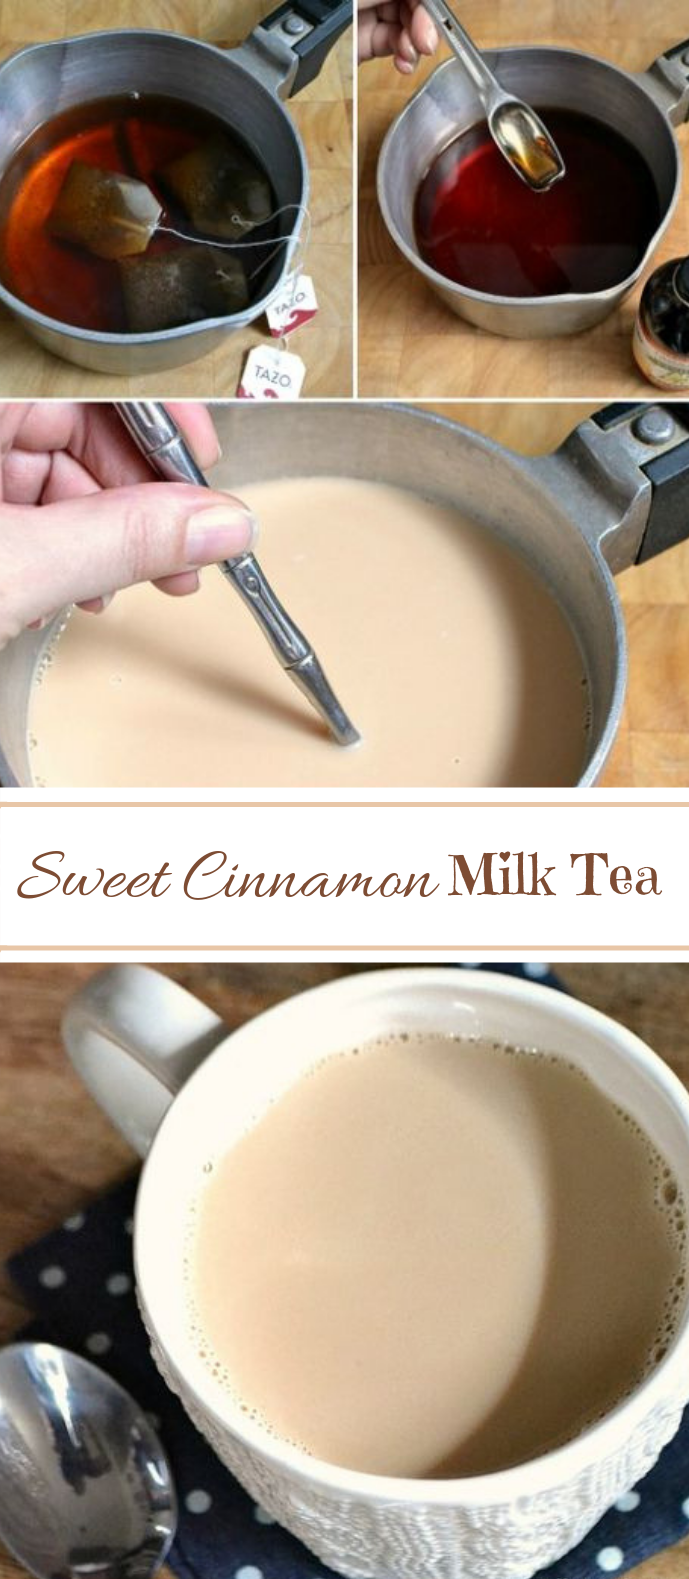 Sweet Cinnamon Milk Tea #fallrecipe #drink